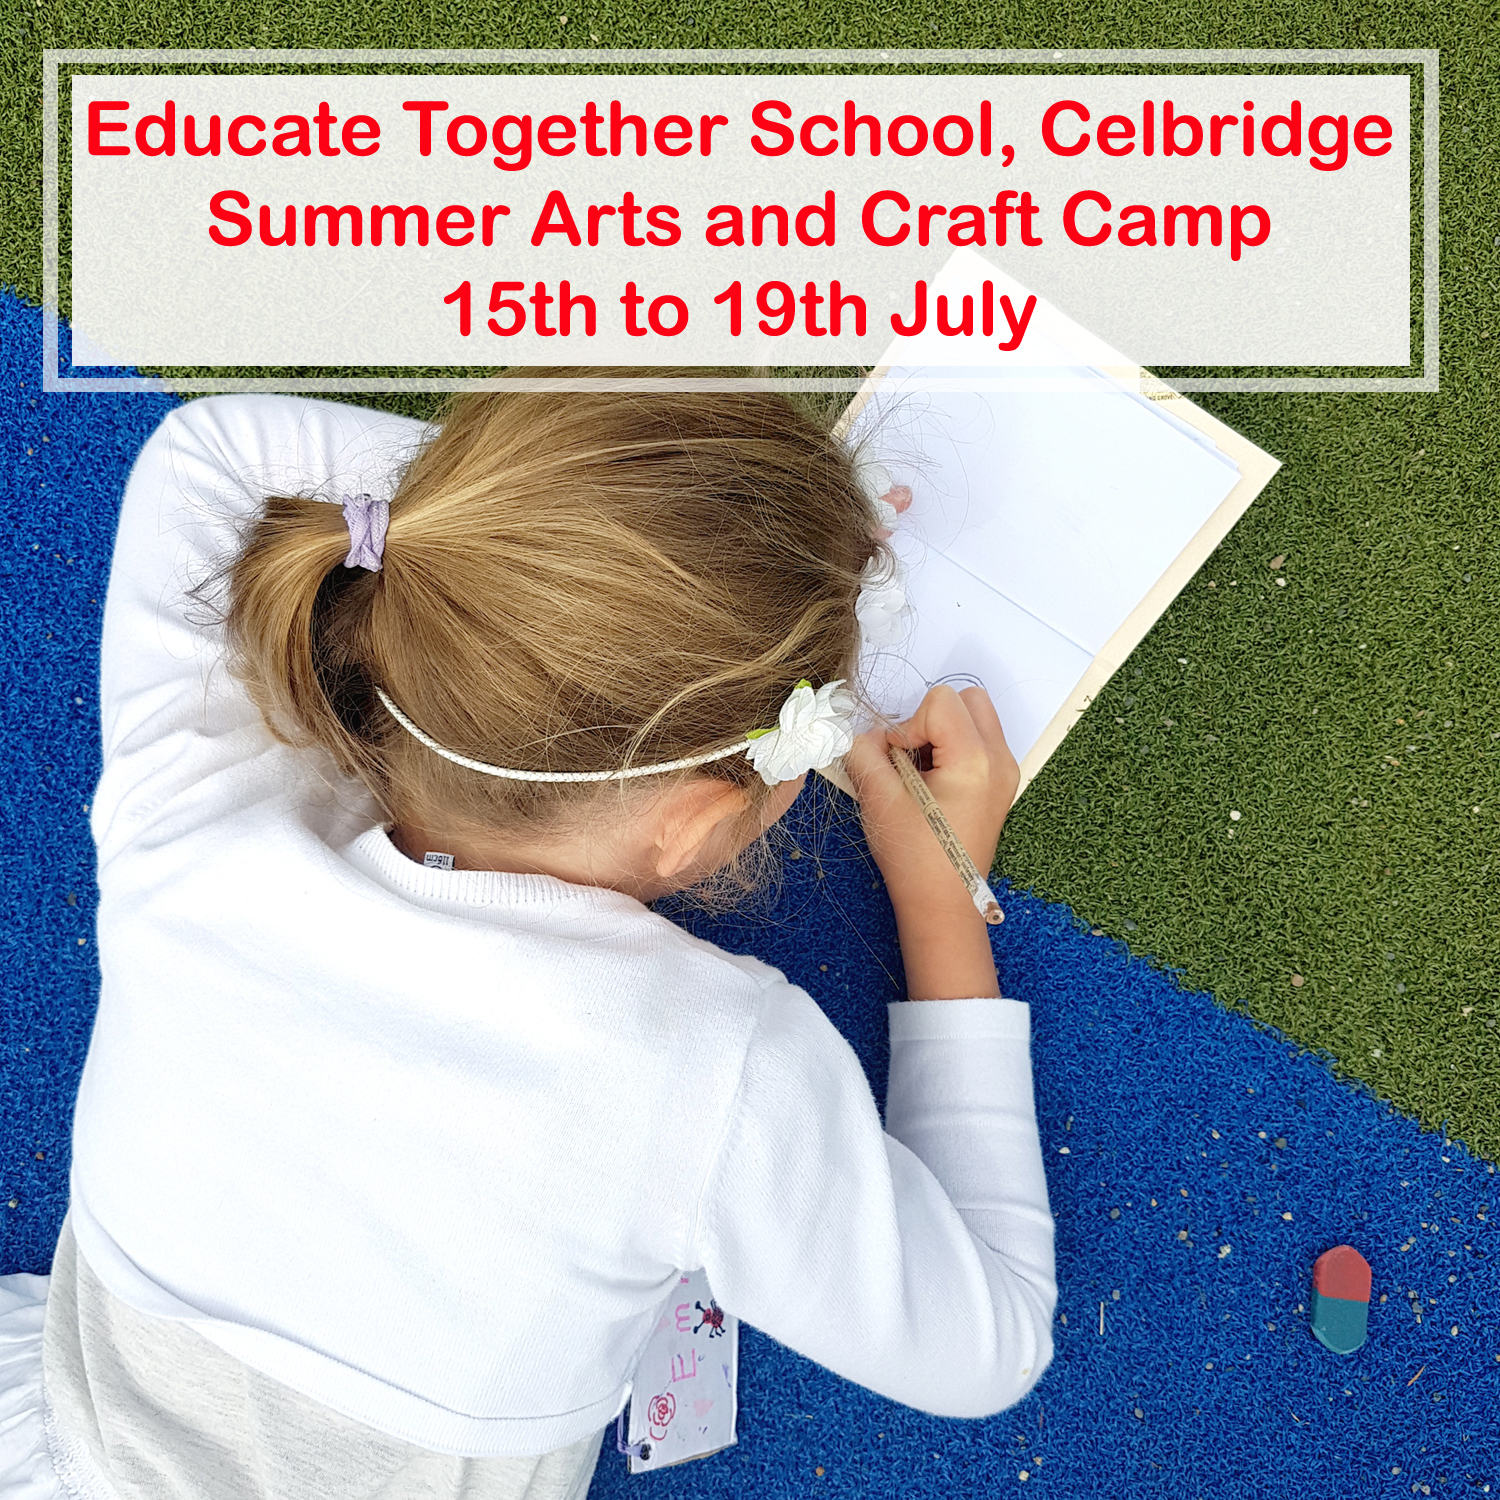 educate together Celbridge summer camp 2019 15th to 19th July copy